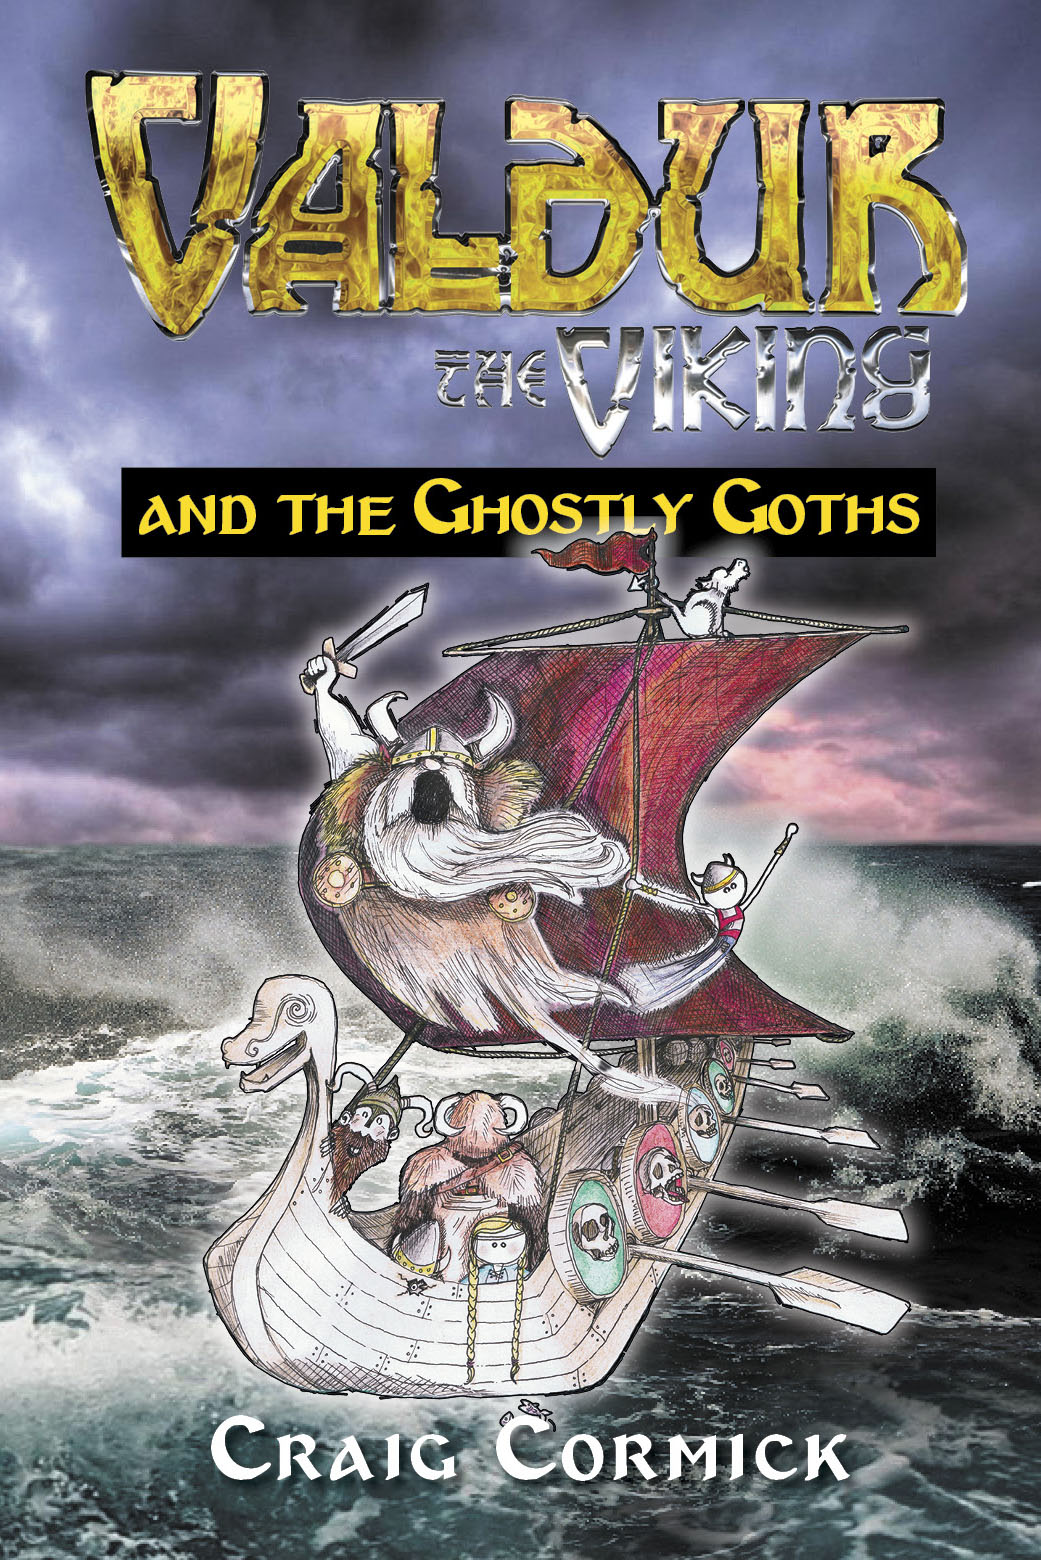 Valdur the Viking and the Ghostly Goths - Craig Cormick